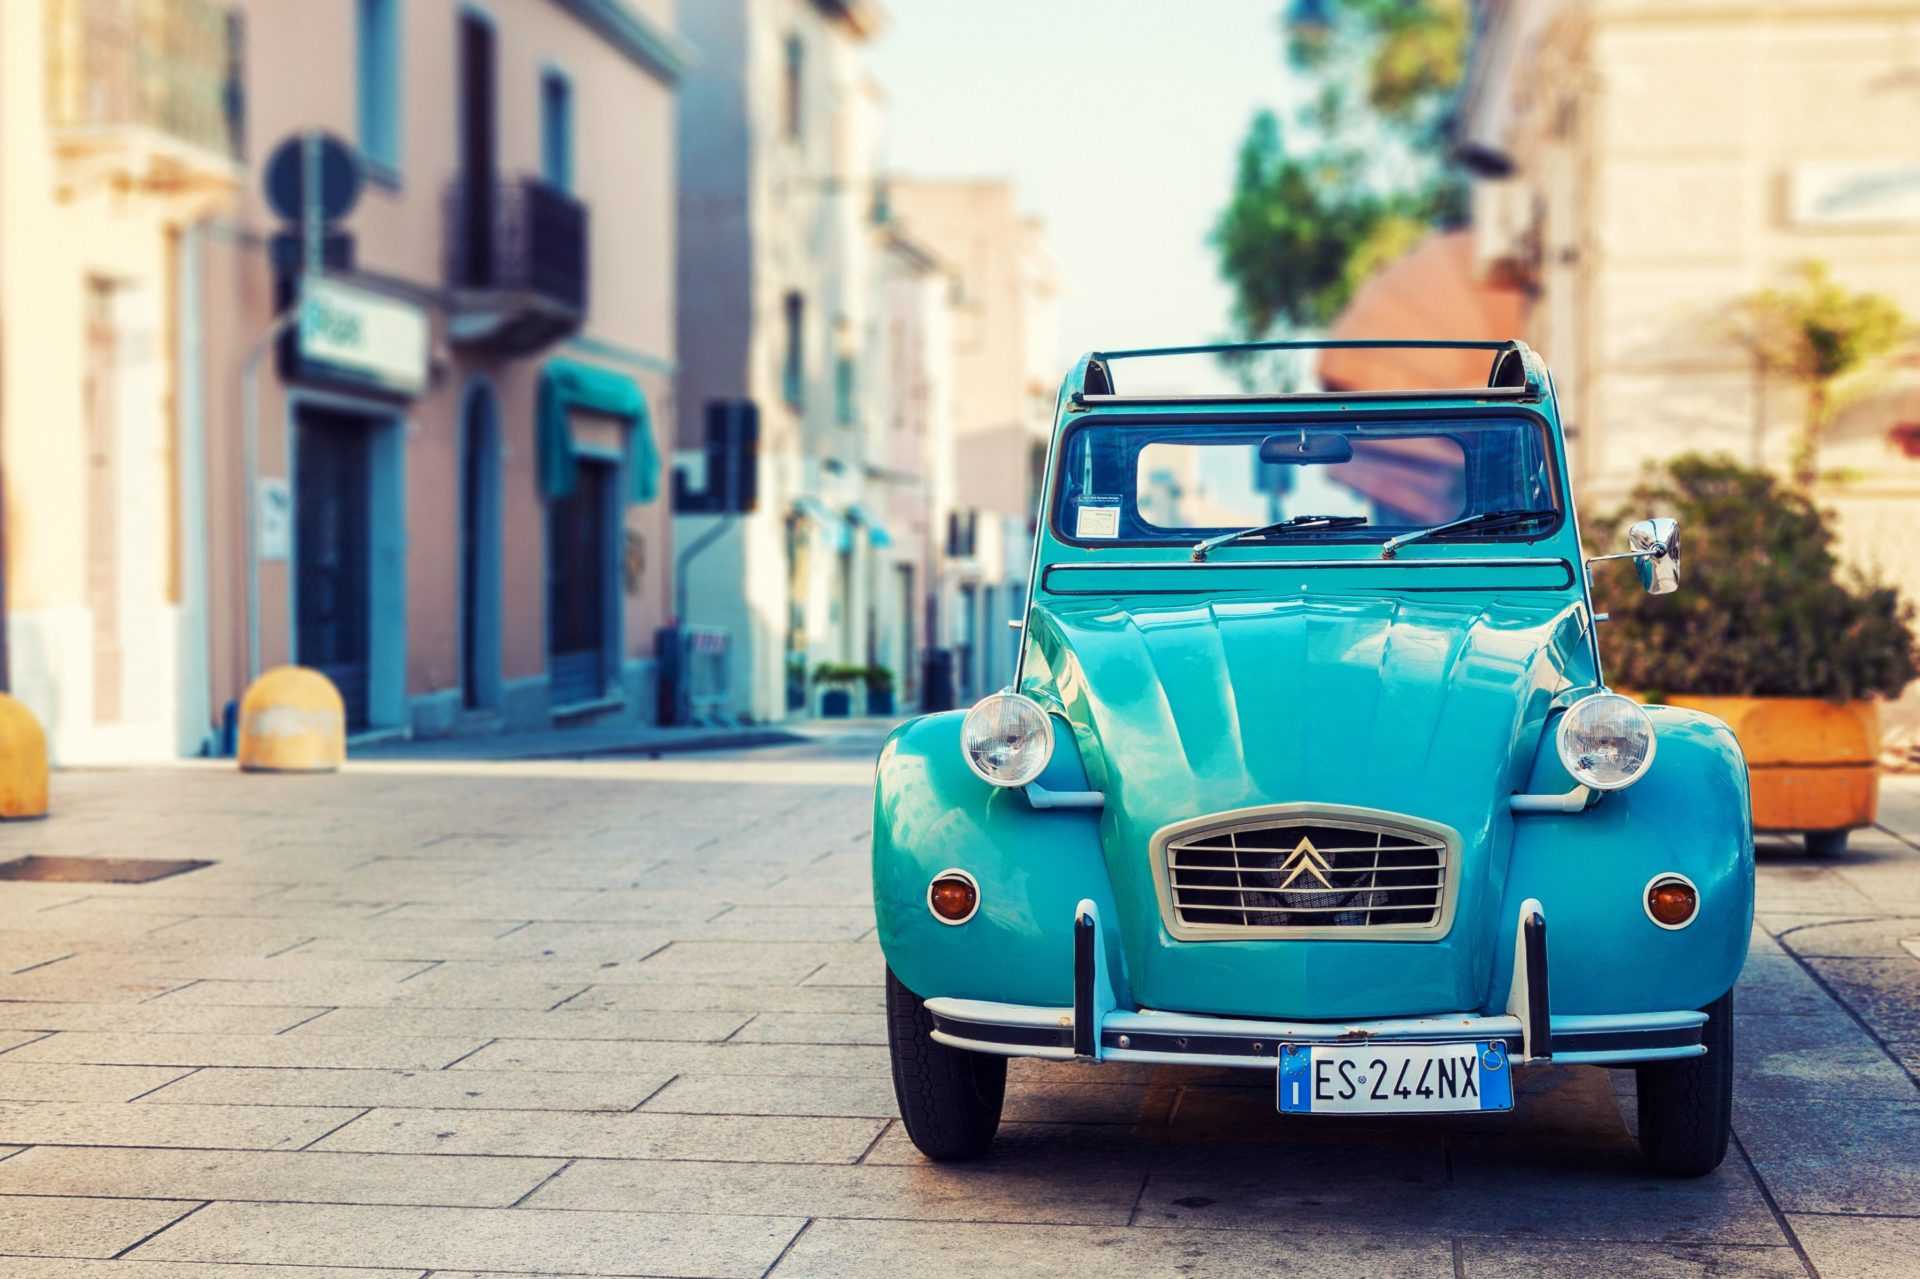 Registering, owning and driving your car in Italy